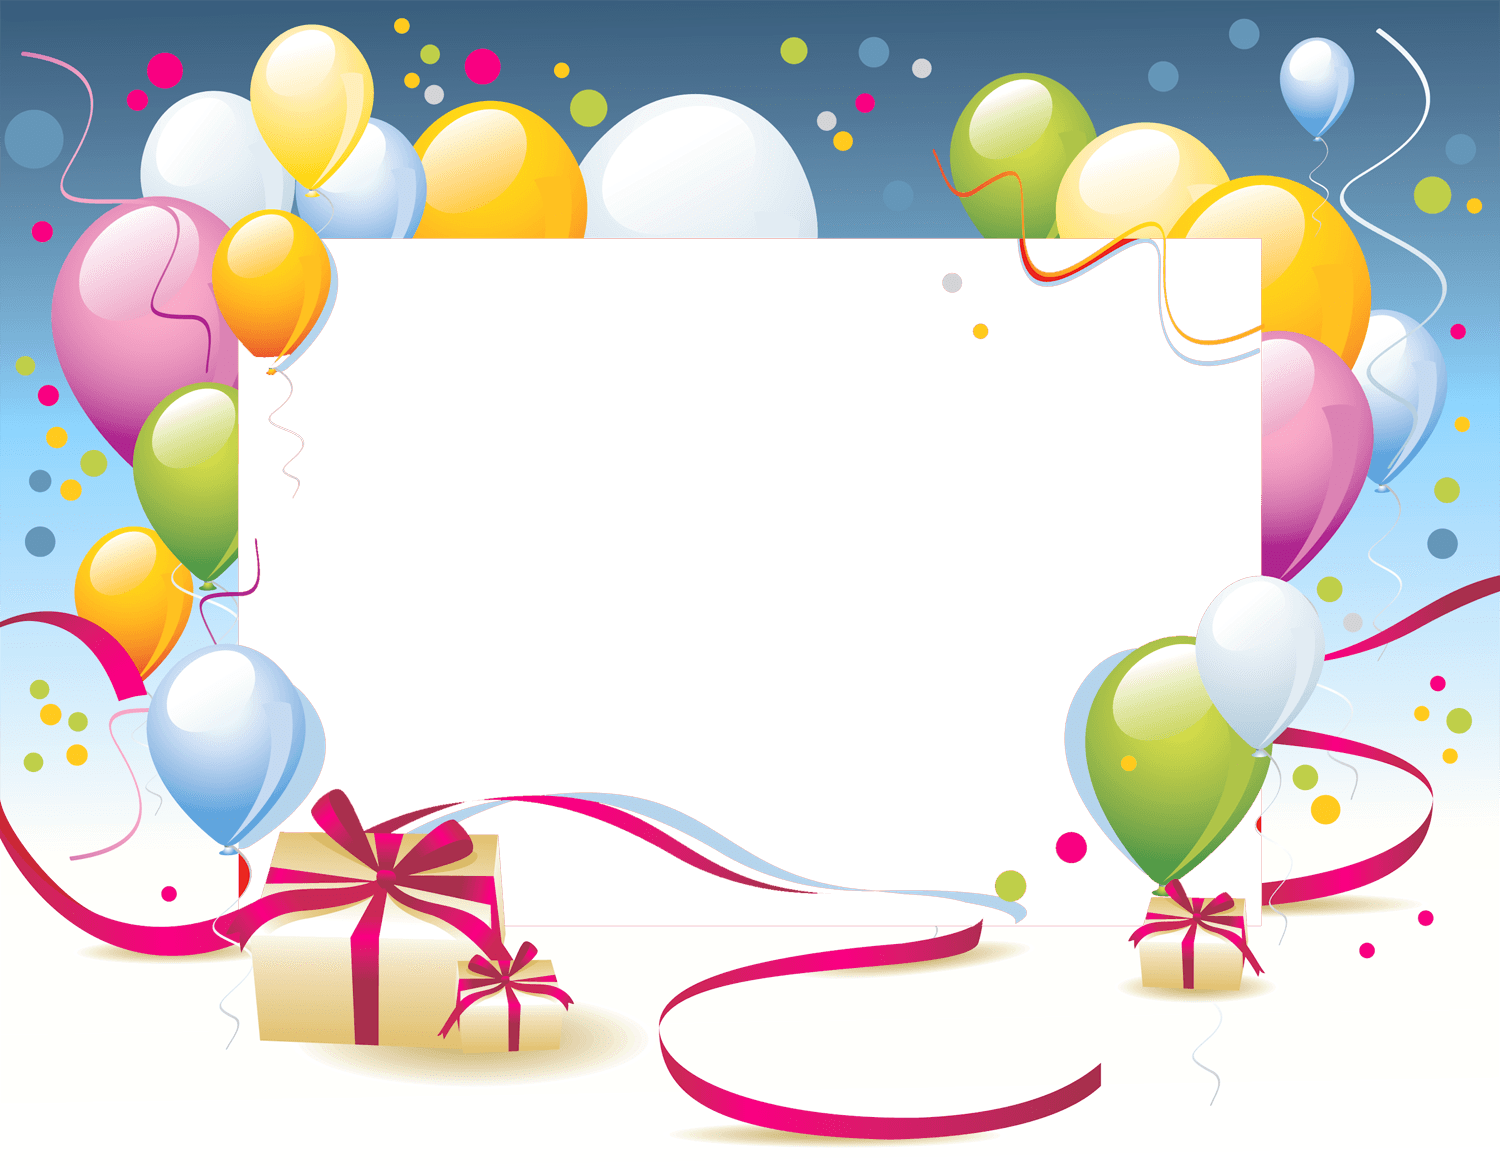 Birthday images png. Happy card template transparent